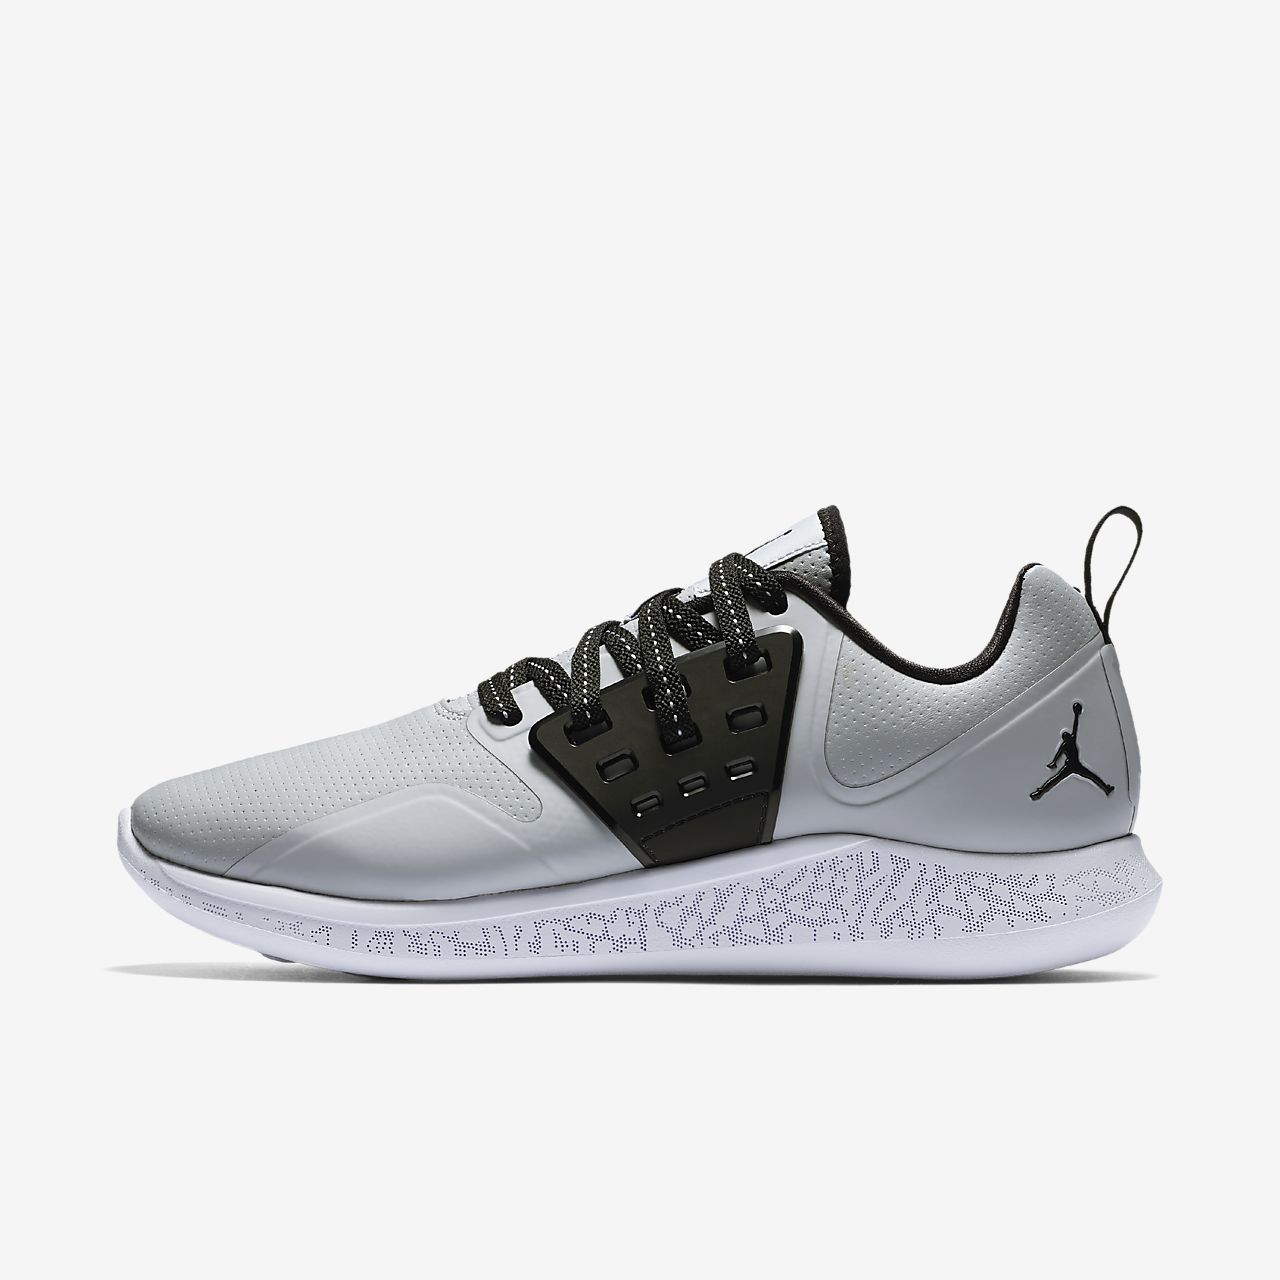 Joe™s New Balance Outlet is a clearance store for New Balance merchandise. It specializes in different kinds of shoes such as running shoes, fitness shoes and lifestyle shoes.